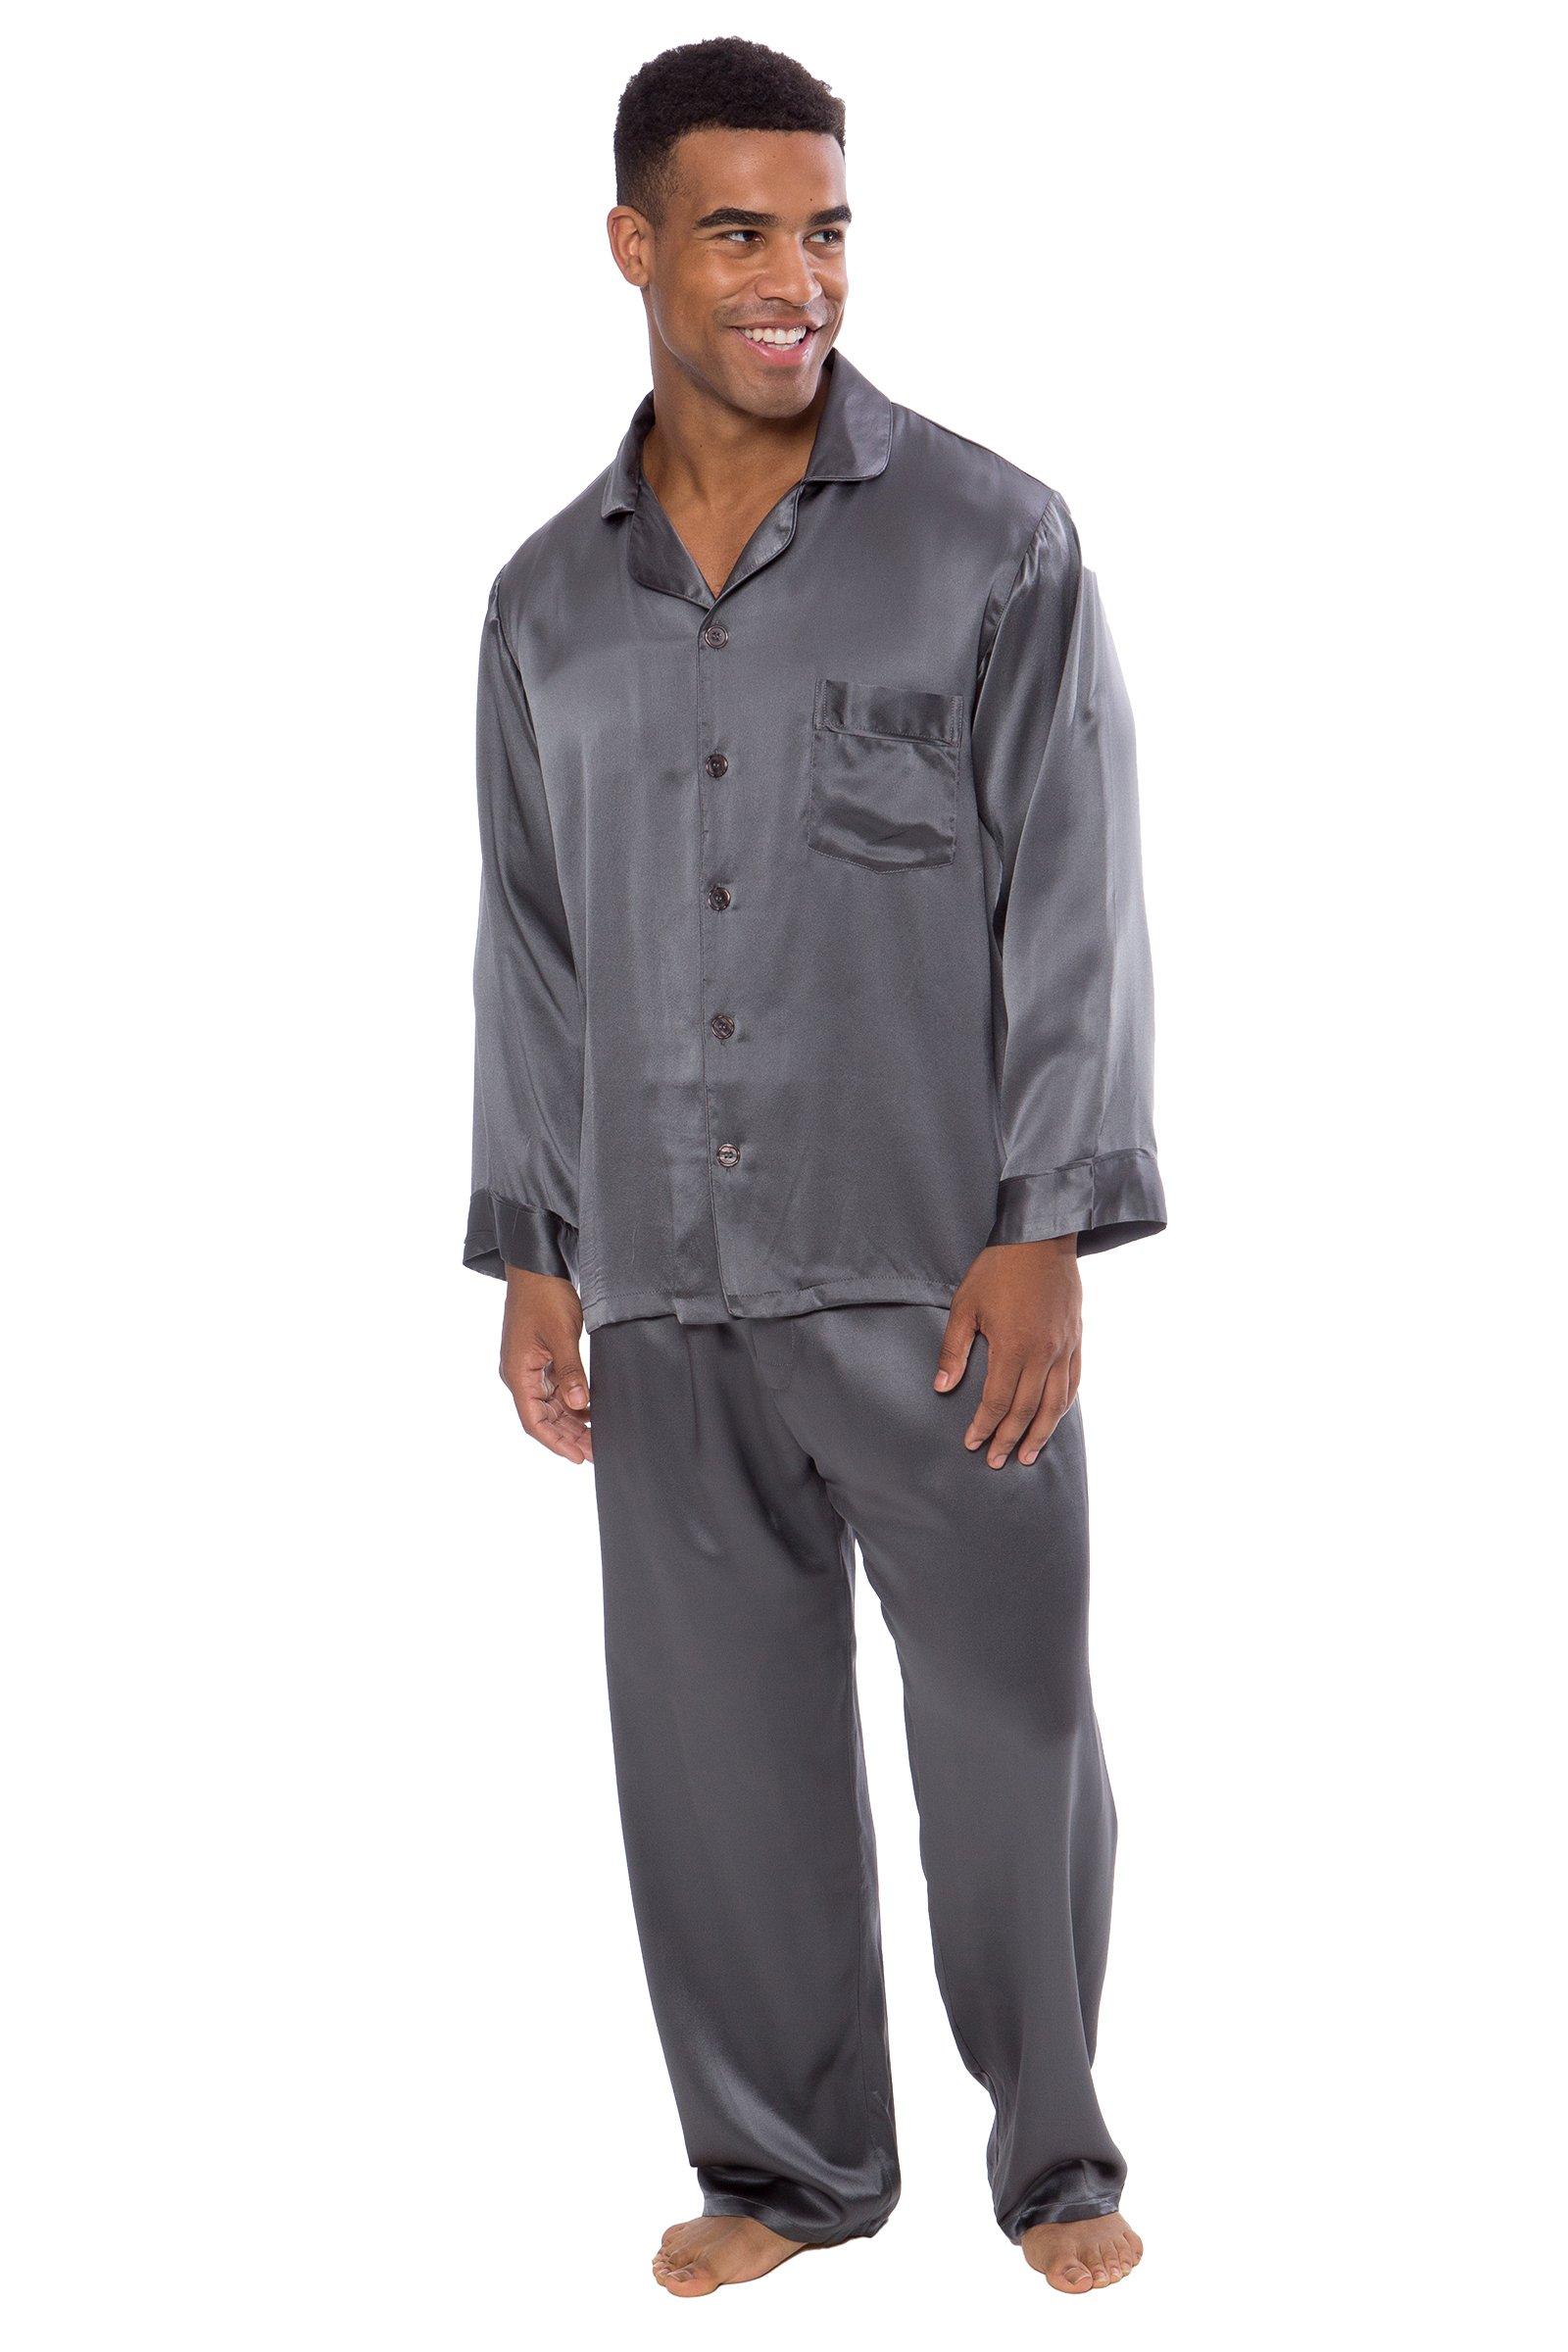 TexereSilk Men's 100% Silk Pajama Set - Luxury Nightwear Pajamas (Milaroma, Zinc, Large/Tall) Popular Gifts For Dad Husband Son MS0001-ZNC-LT